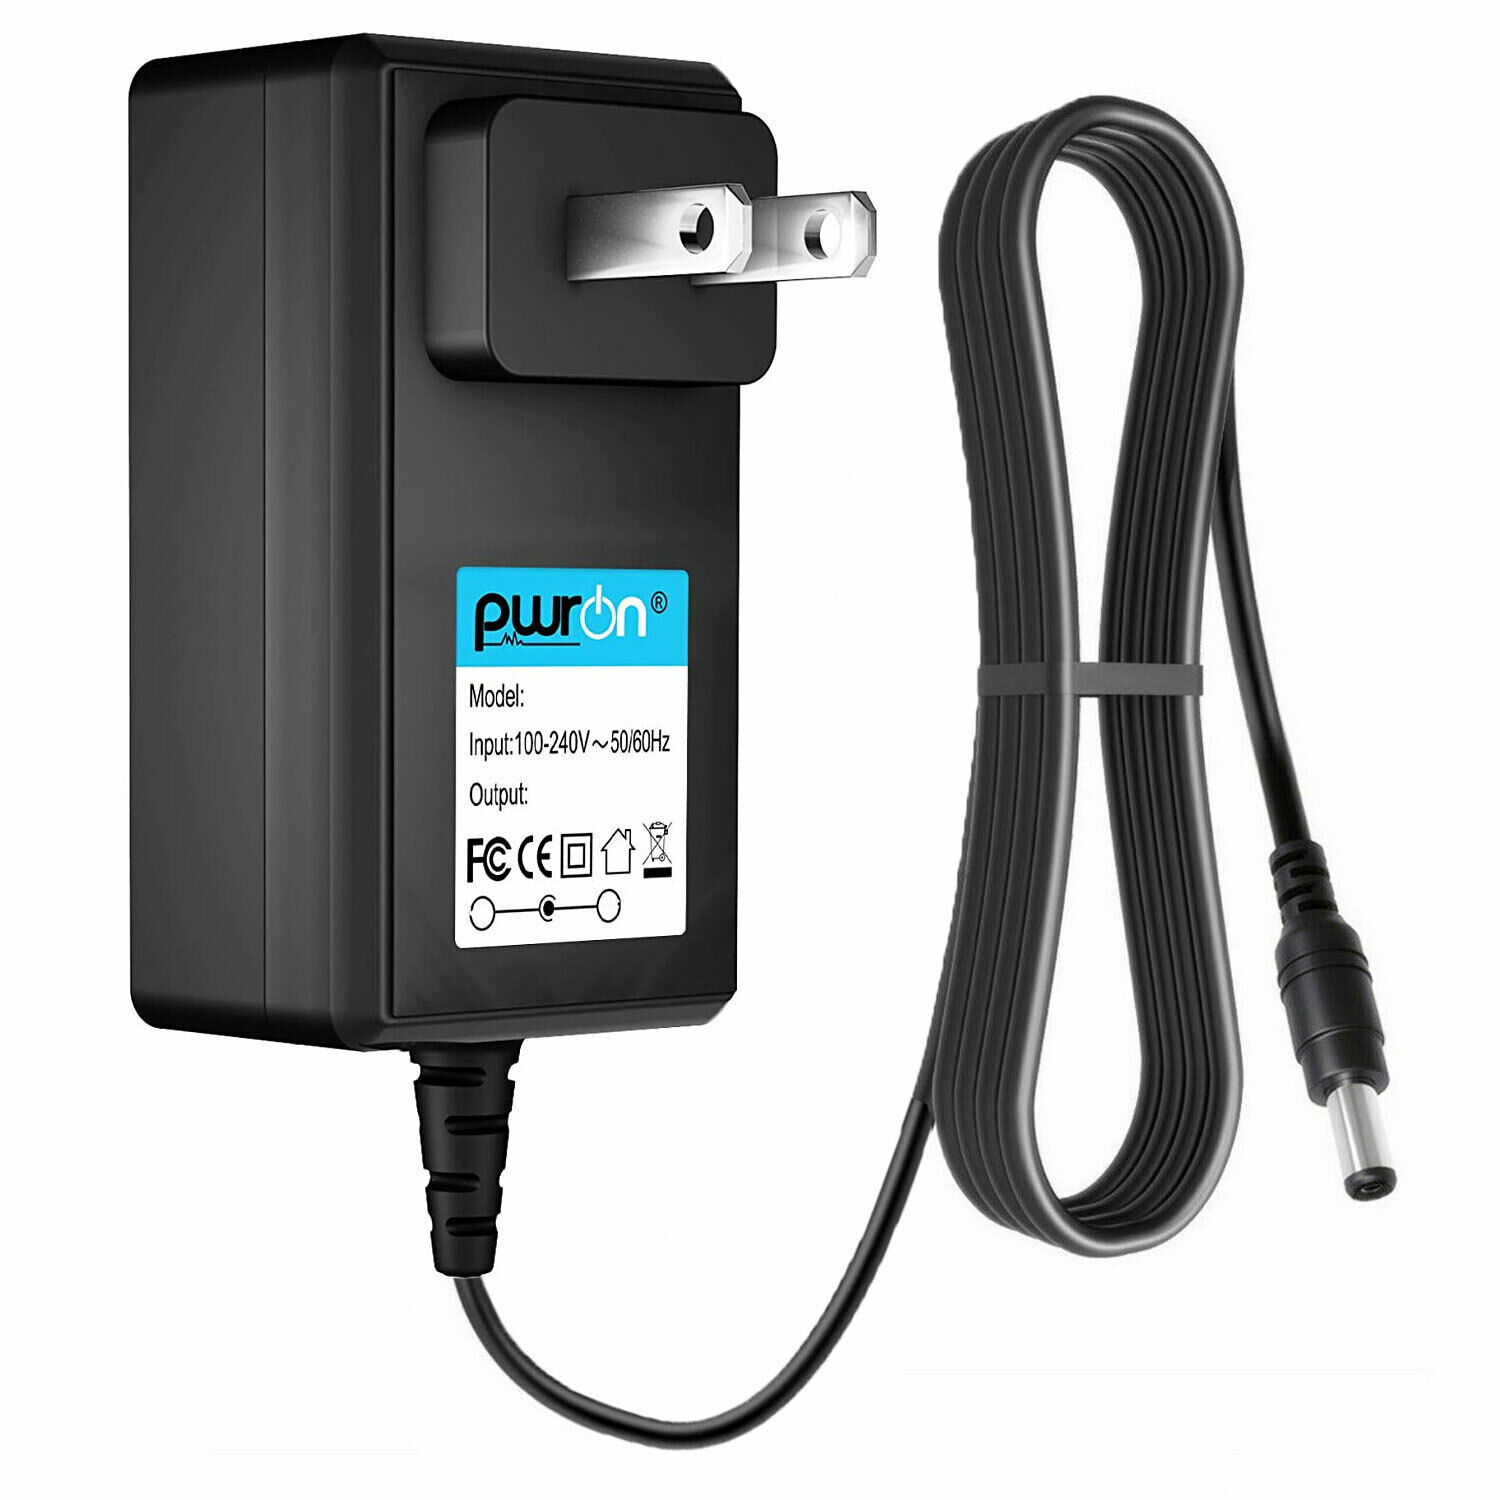 PwrON AC DC Adapter For Crate TX50DB TX50DBE TX500 TX50D Limo Power Supply PSU